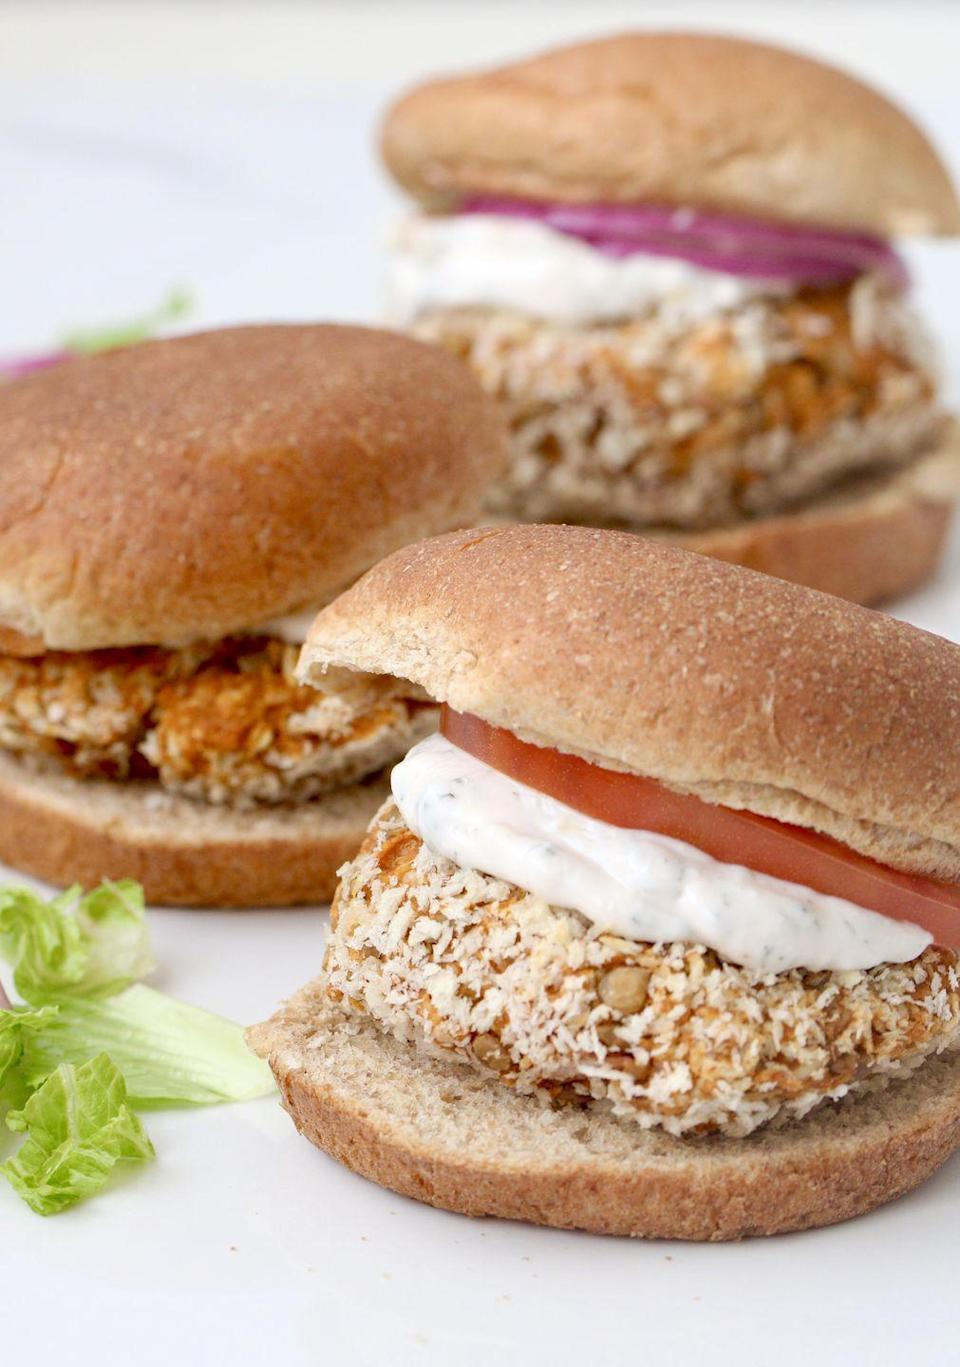 """<p>These burgers by<a href=""""https://shawsimpleswaps.com/bbq-lentil-burgers/"""" rel=""""nofollow noopener"""" target=""""_blank"""" data-ylk=""""slk:Shaw's Simple Swaps"""" class=""""link rapid-noclick-resp""""> Shaw's Simple Swaps</a> might be meatless but they're heavy in flavor. Each burger has only 120 calories and you can easily make a bunch at once to save for easy meals throughout the week. Lentils provide a ton of lean protein and fiber to keep you satiated and the panko breadcrumbs and BBQ sauce make the burger feel incredibly indulgent despite its clean profile.</p>"""